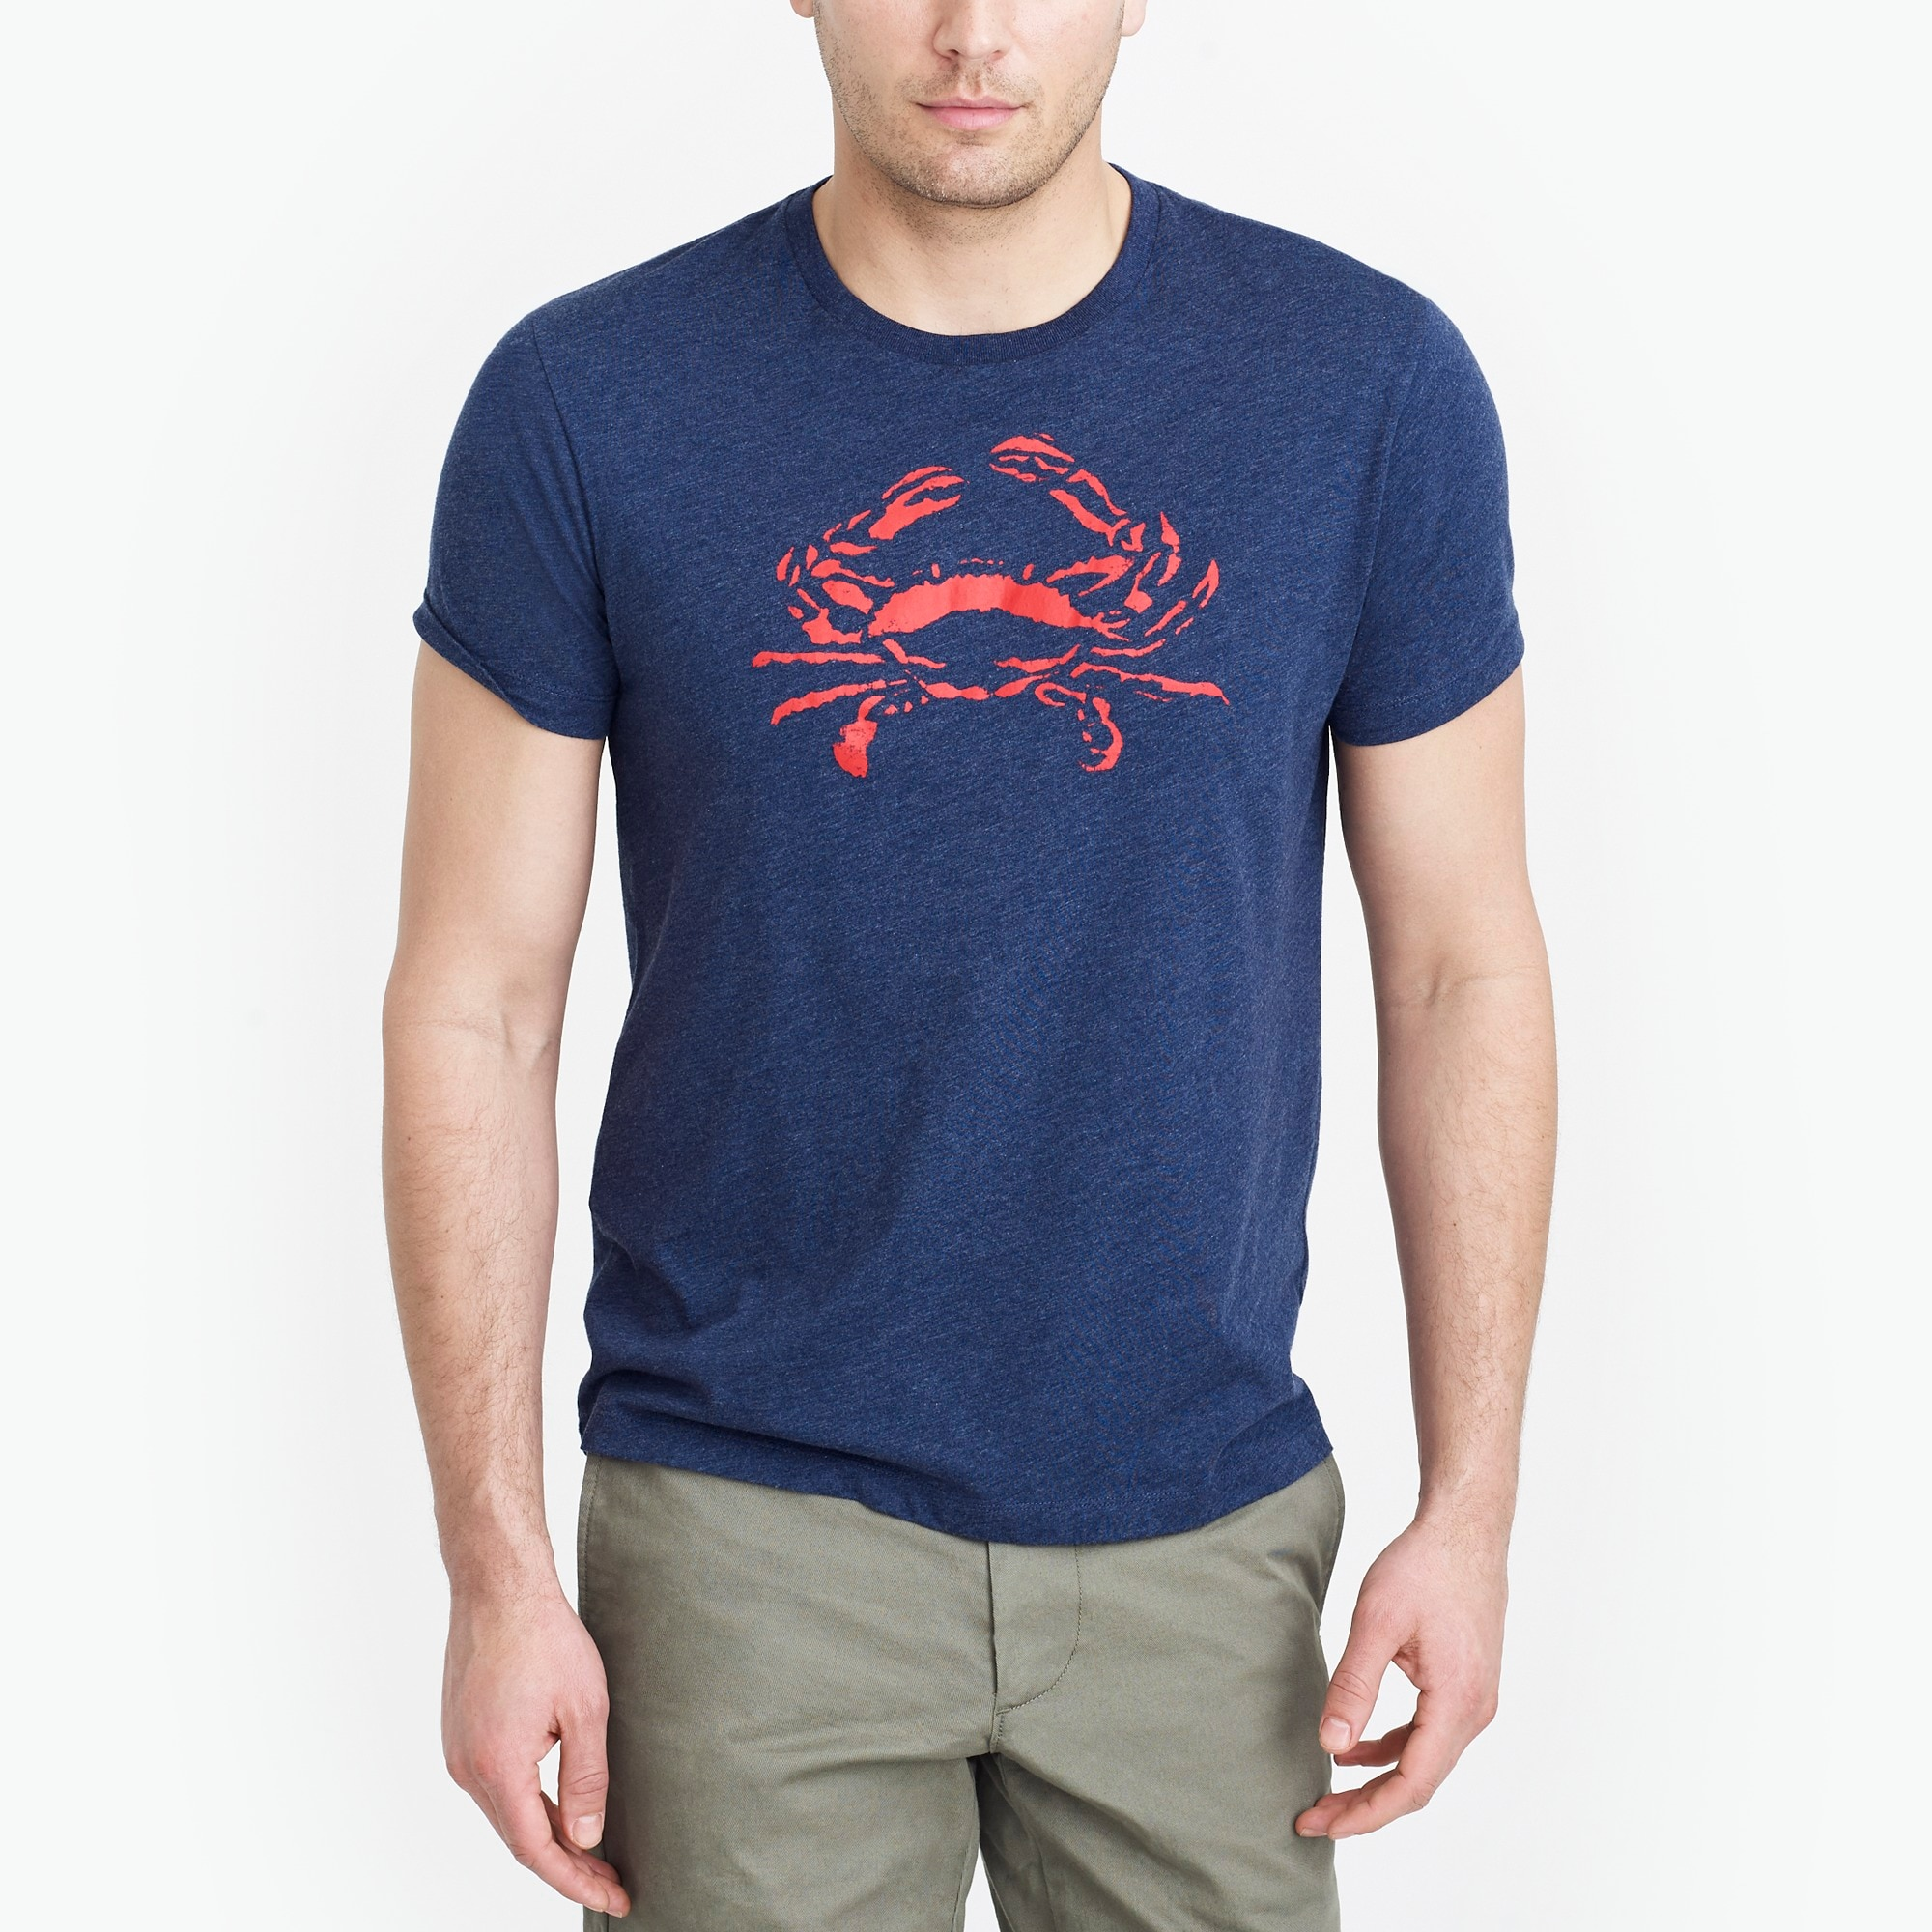 J.Crew Mercantile Broken-in crab T-shirt